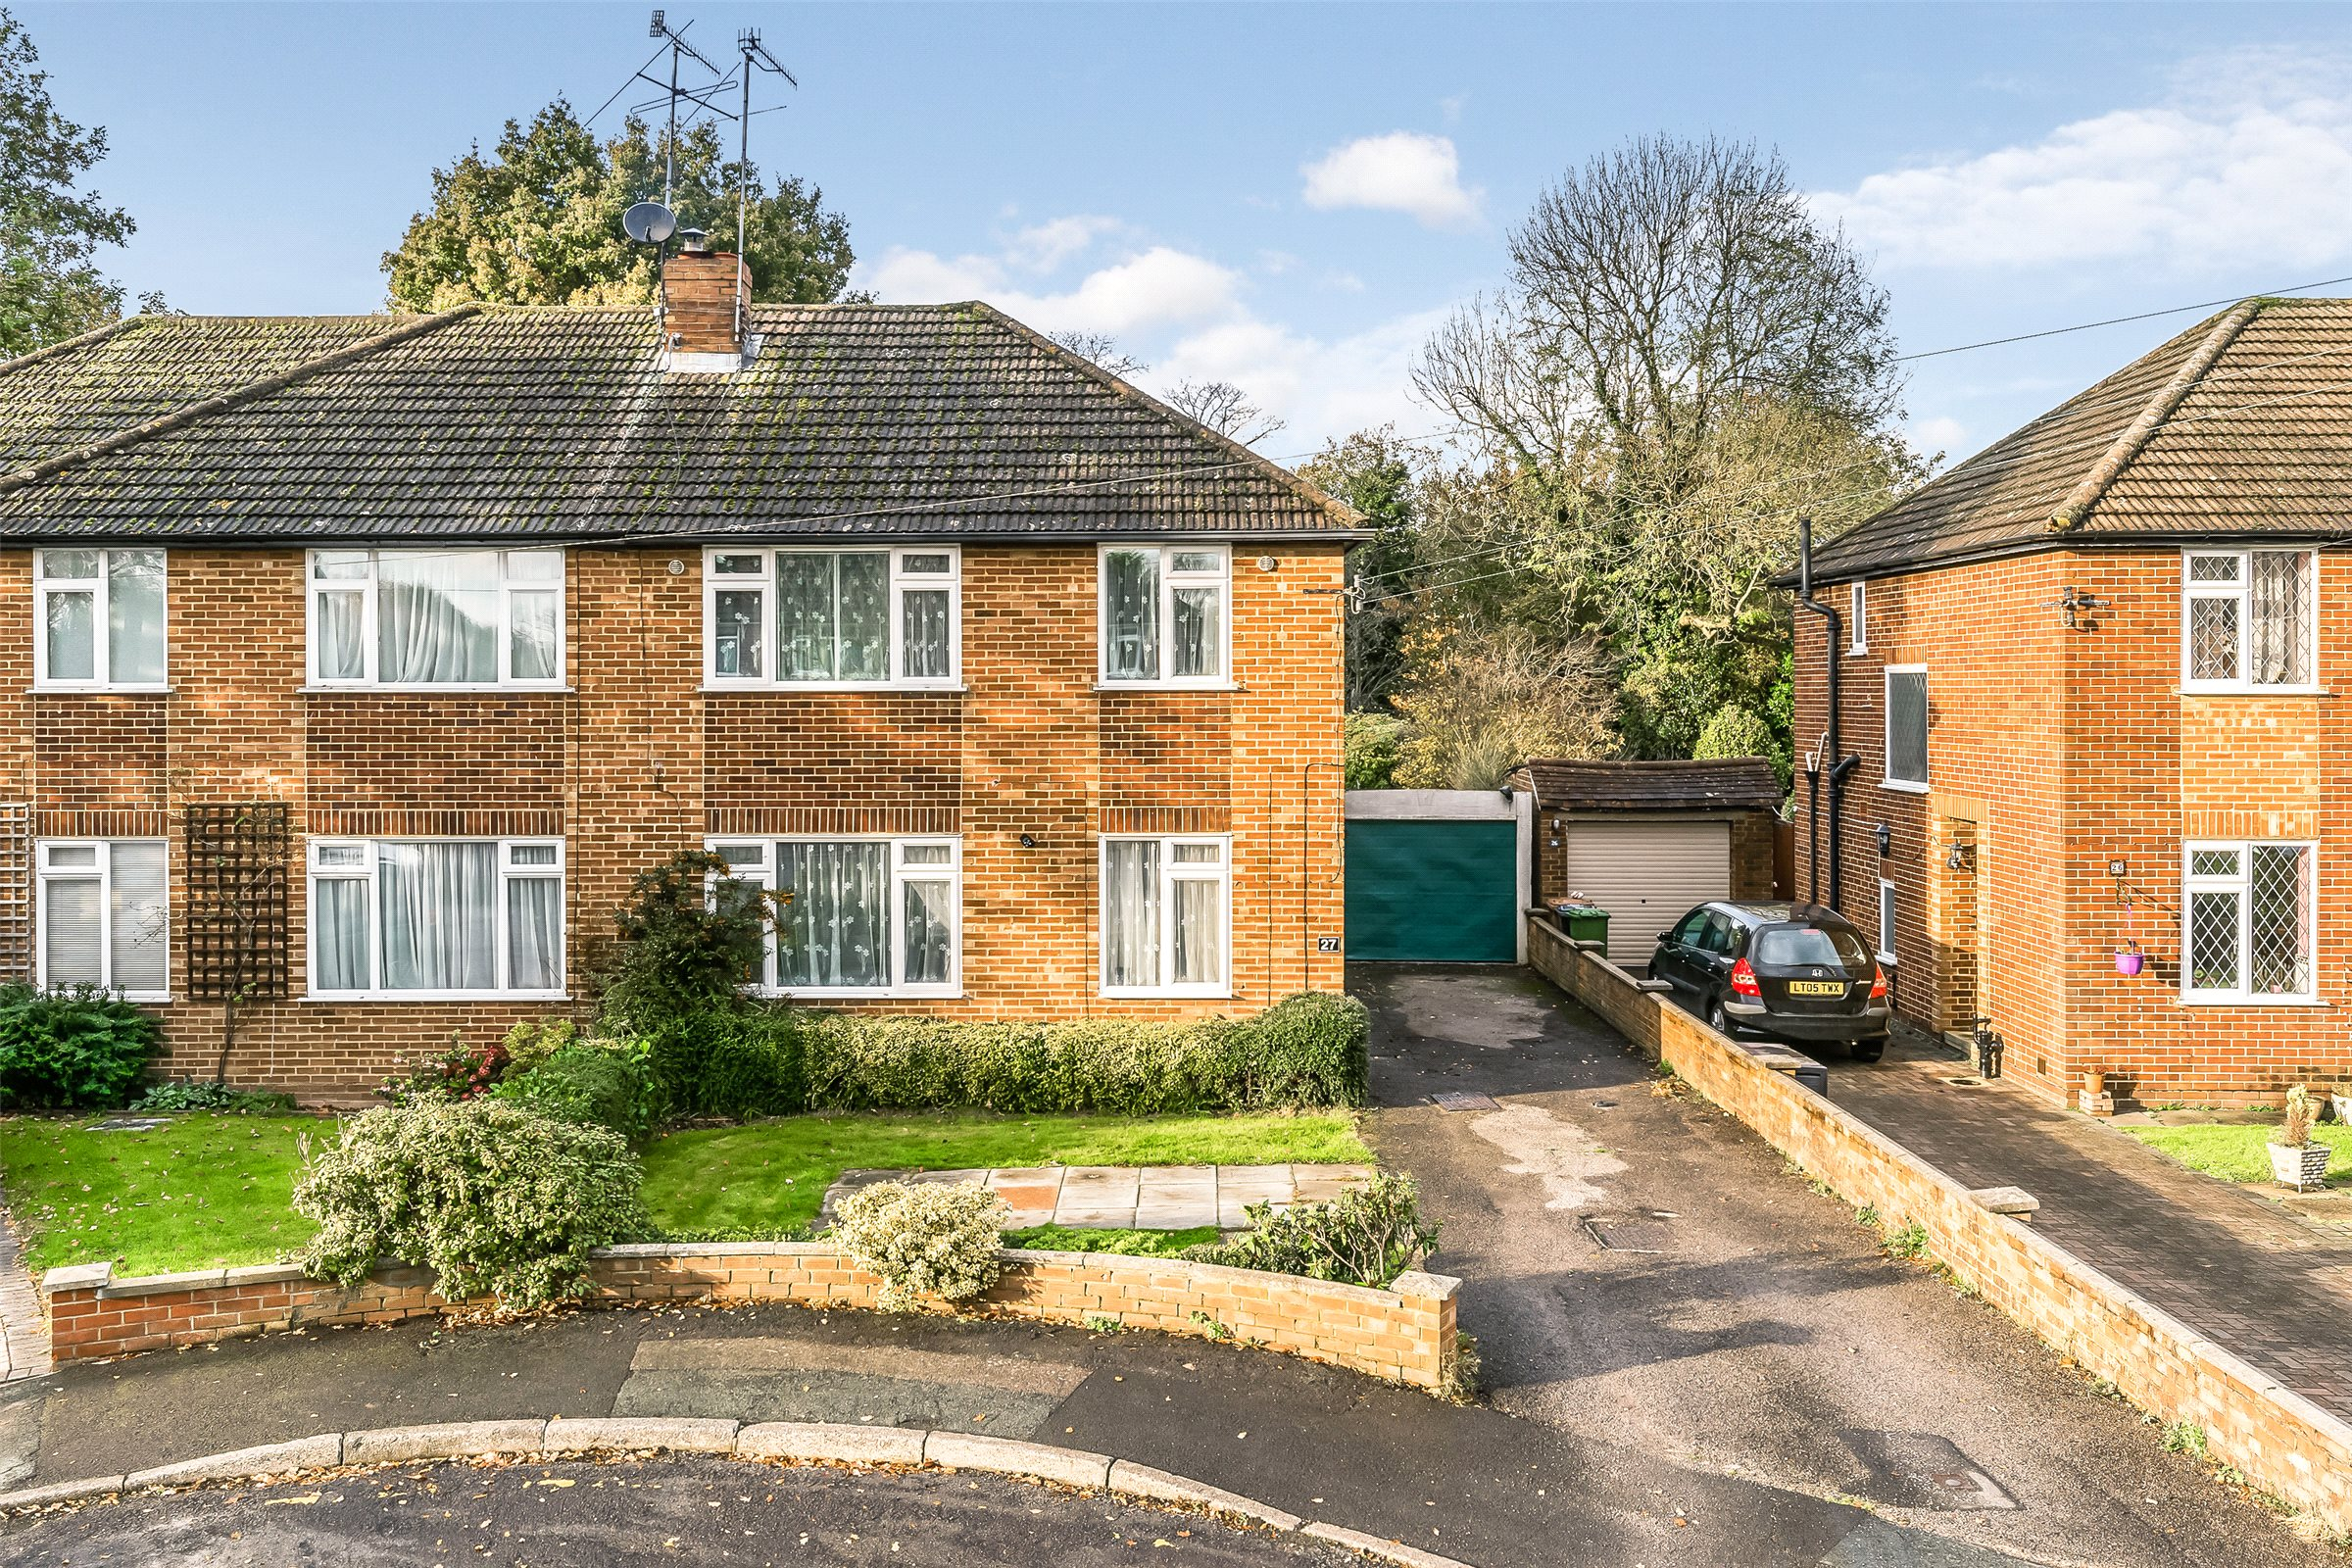 3 Bedrooms Semi Detached House for sale in Lechford Road, Horley, Surrey, RH6